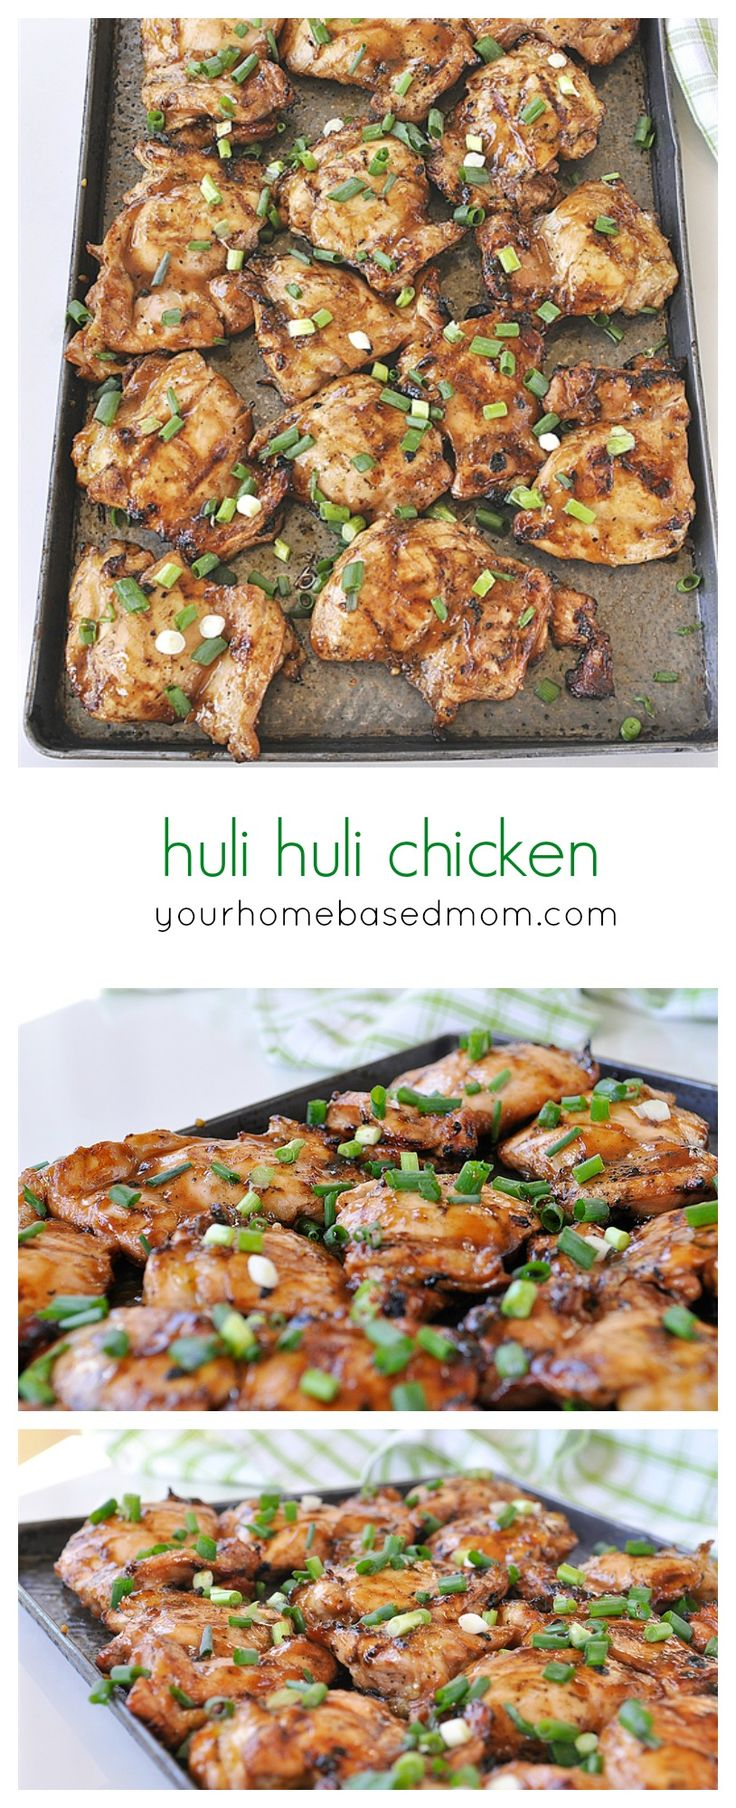 huli huli chicken - easy Hawaiian BBQ'd chicken | Posted By: DebbieNet.com |